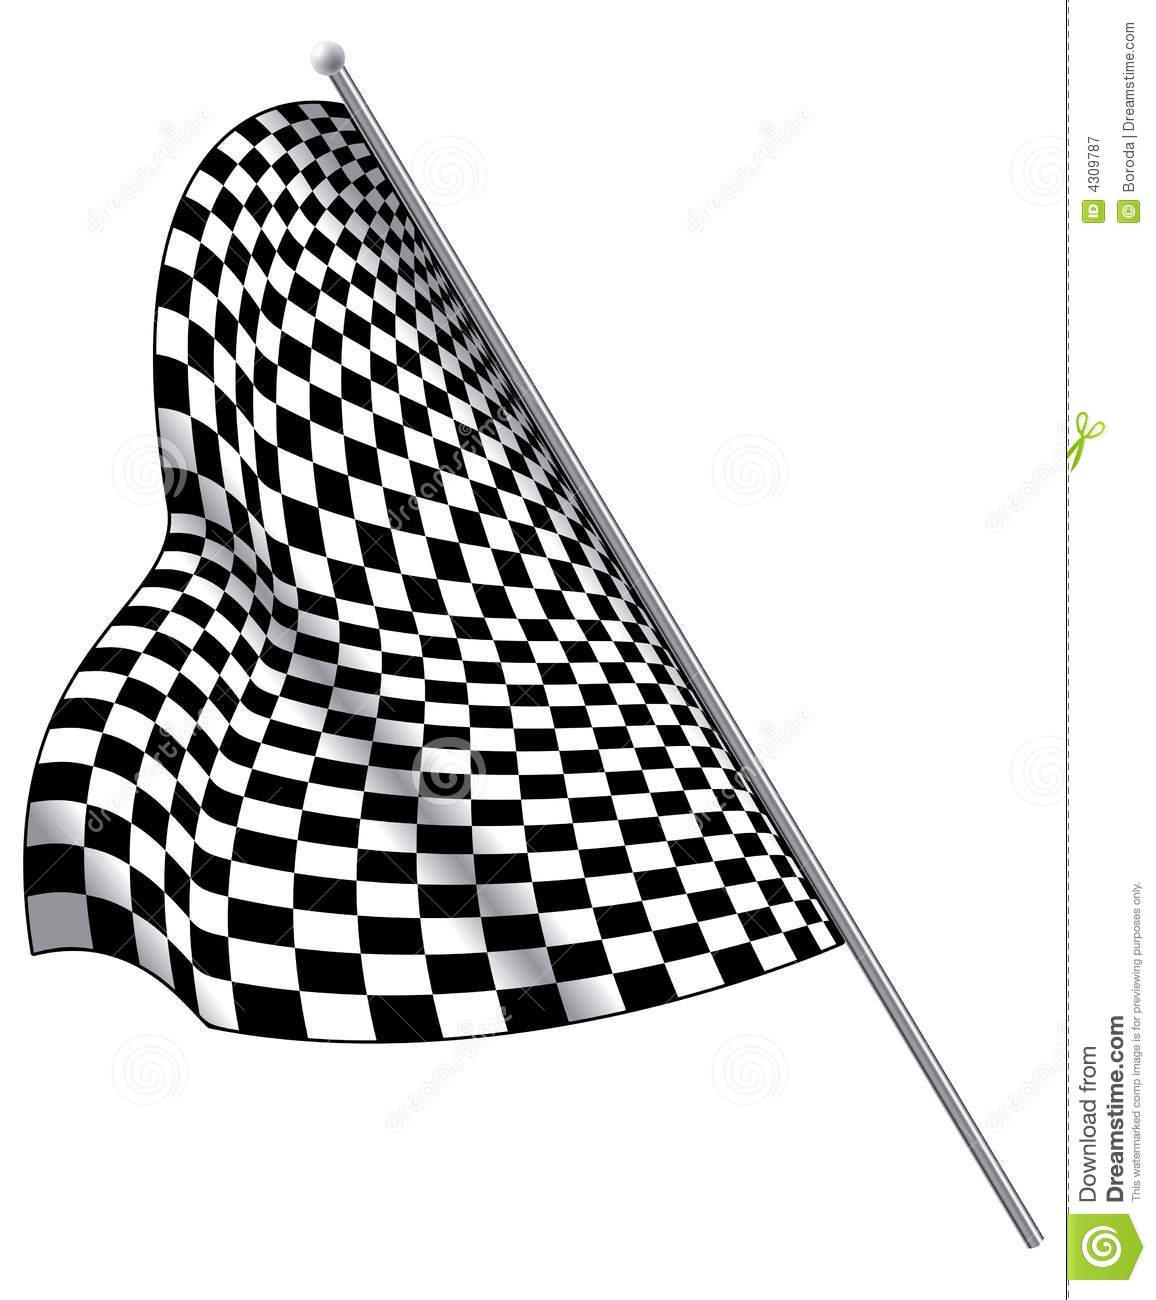 272187796578 together with 32688374788 furthermore 32805499587 moreover Car Decal Vinyl Graphics Stickers Hood Decals Checkered Flags Stripe 21cmx72 5cm moreover Chkstripe. on checkered flag graphics